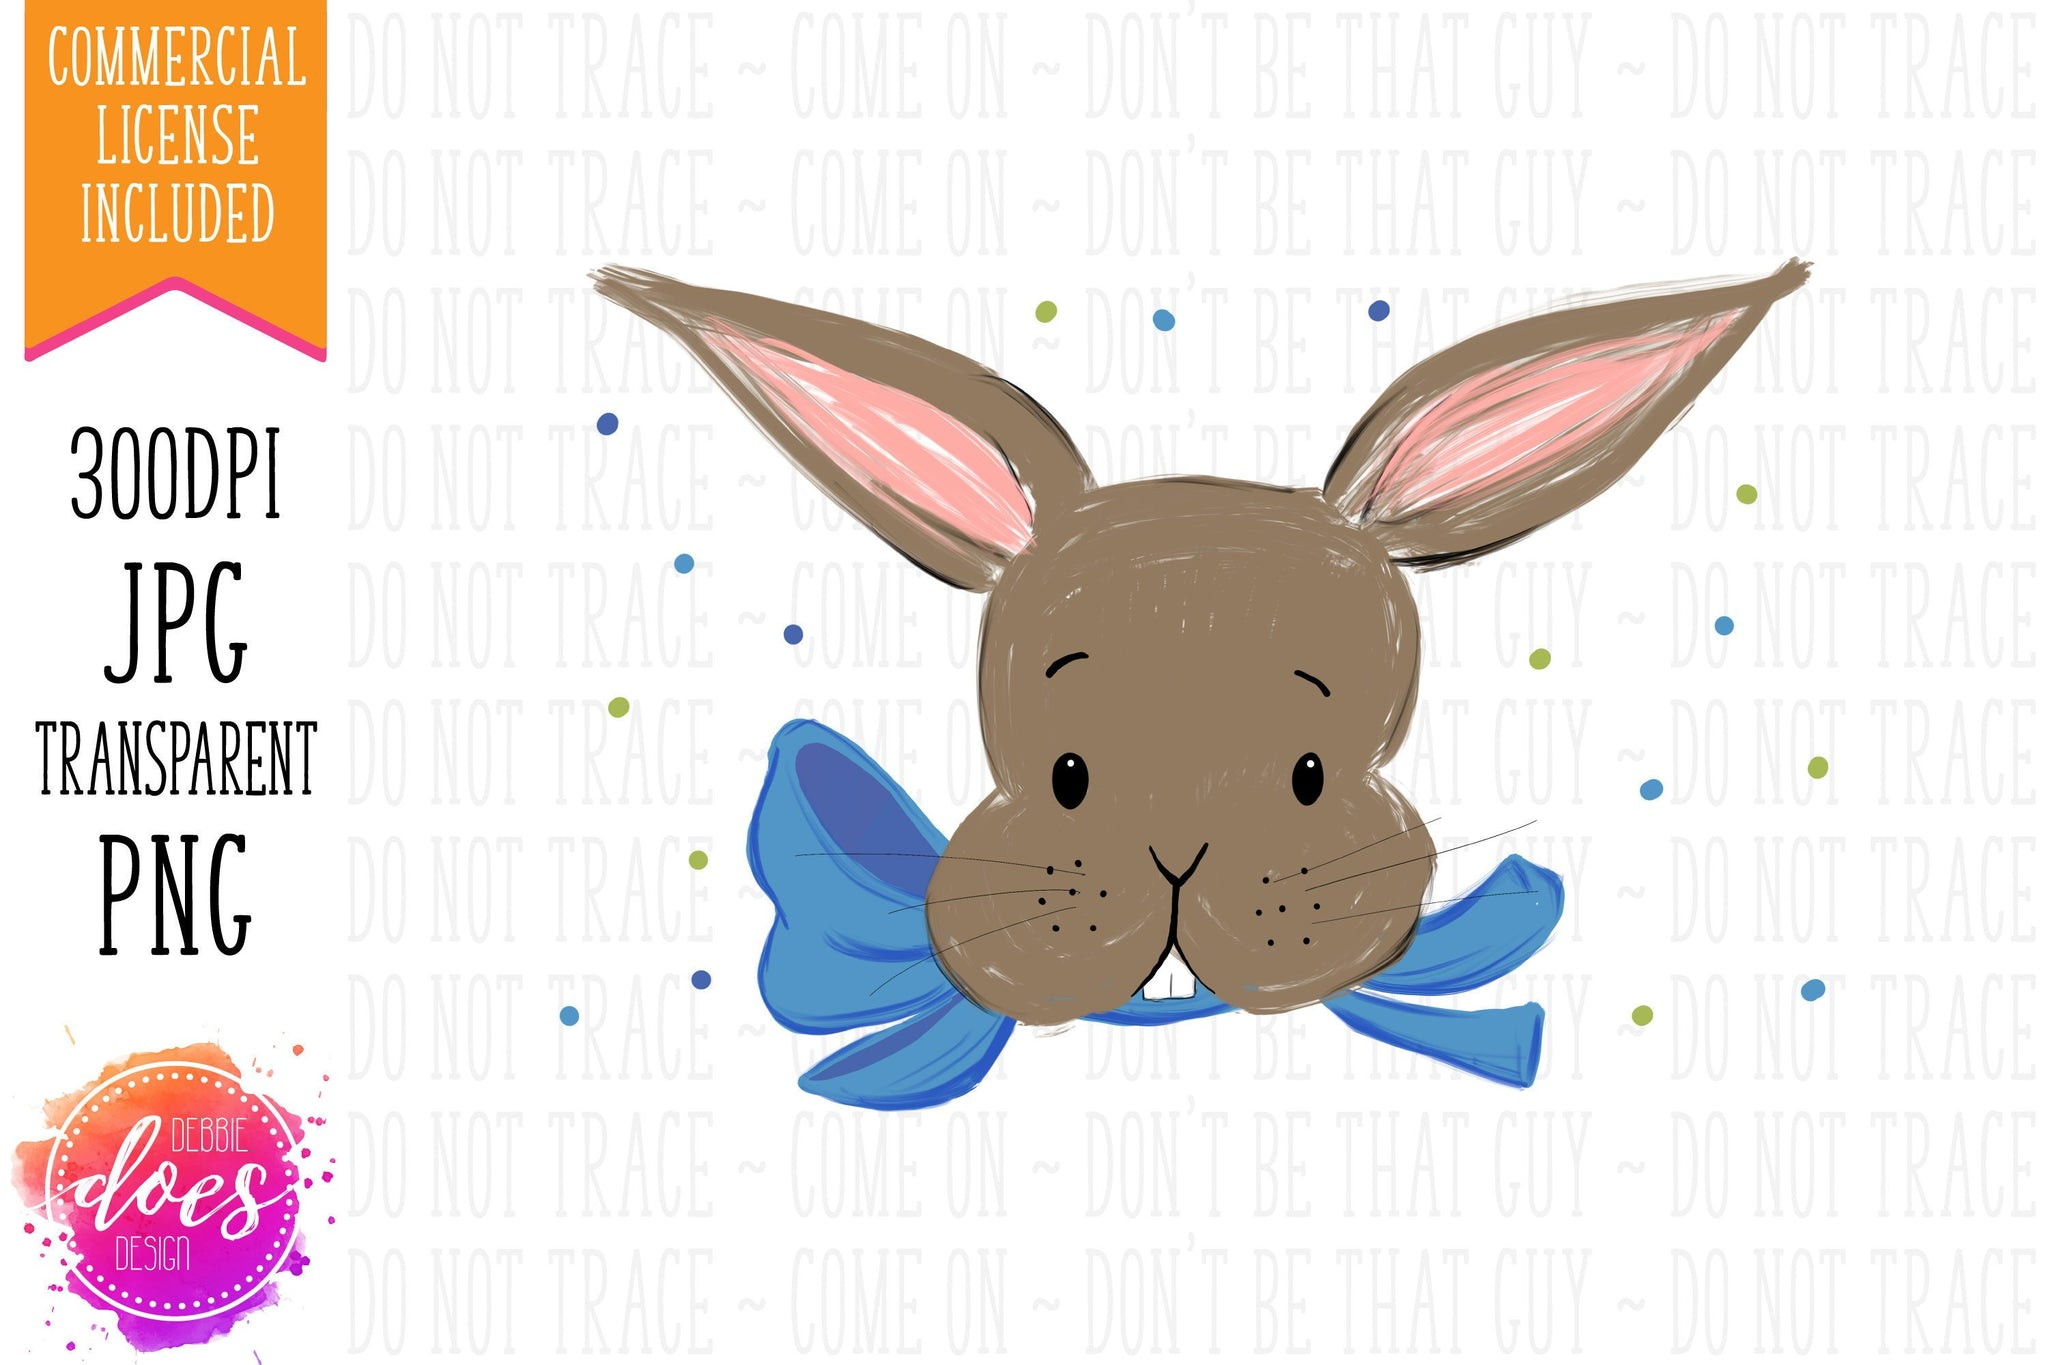 Easter Bunny with Blue Bow - Pillowcase Design | Sublimation Print | Printable | Sublimation Design | PNG | JPG - 300DPI